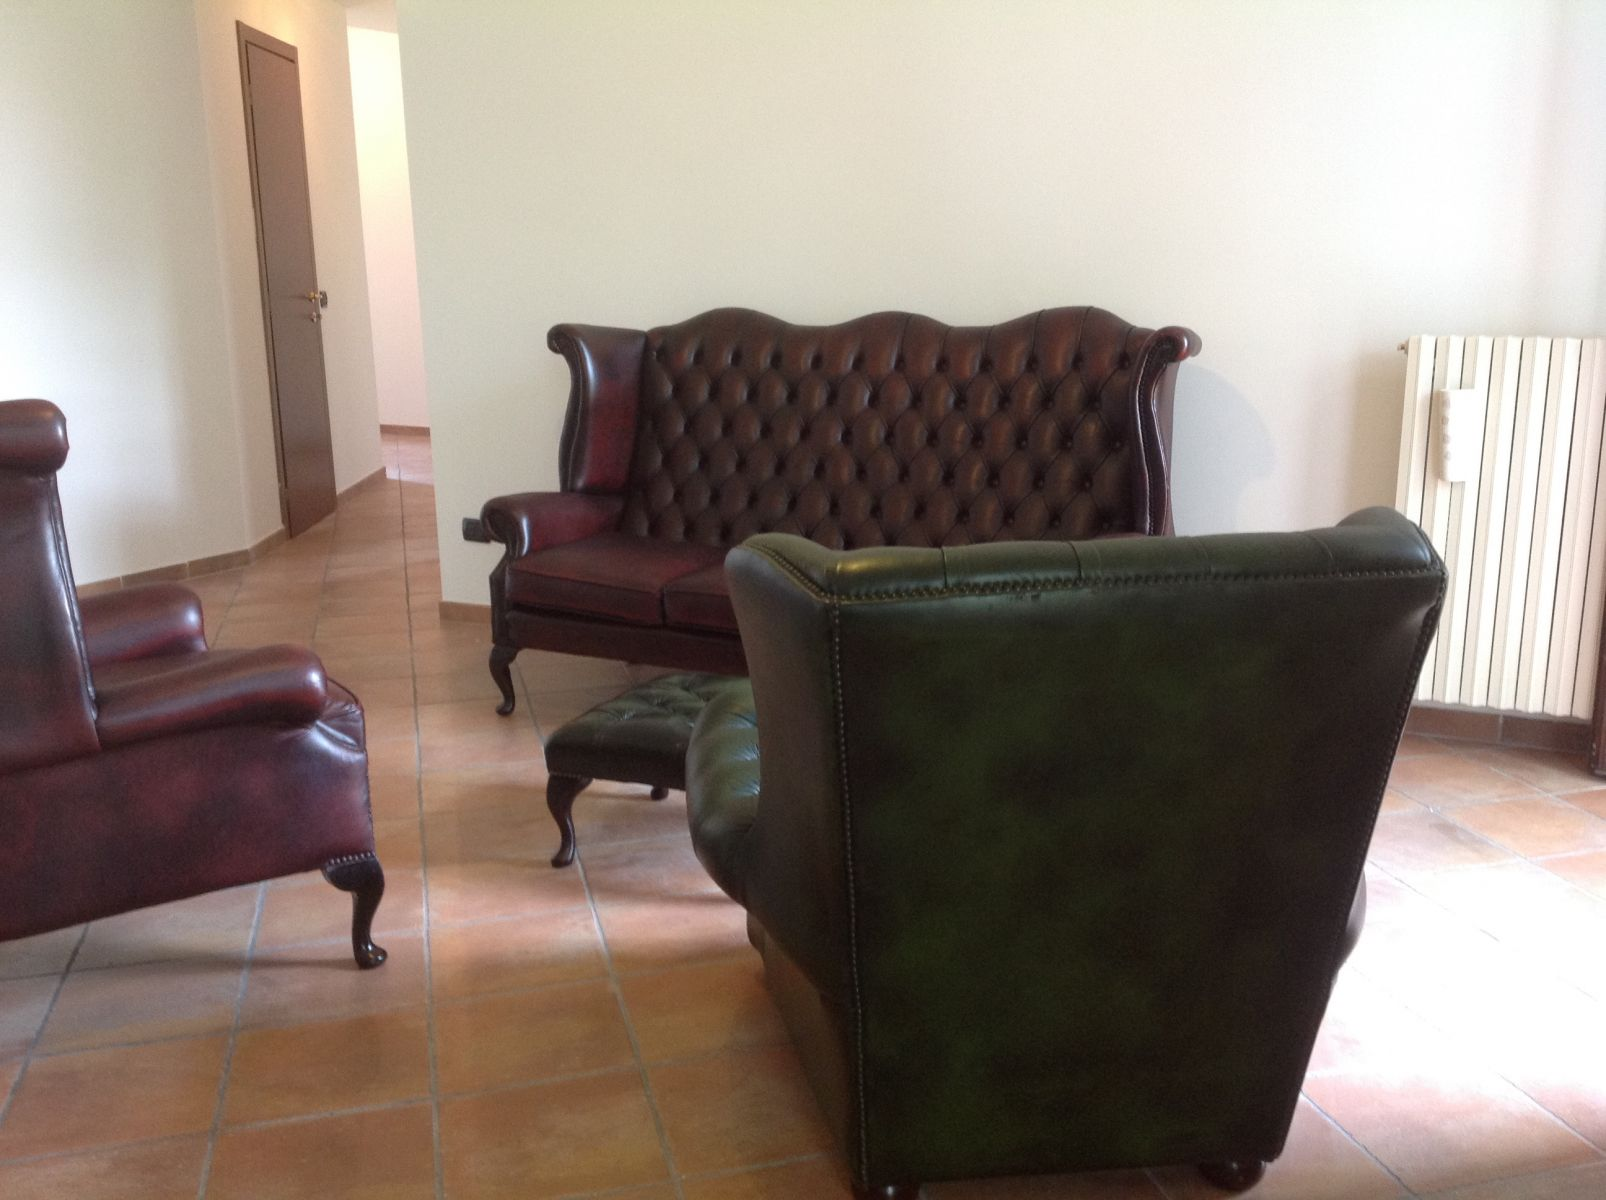 Example of furniture for a home img_7513.jpg